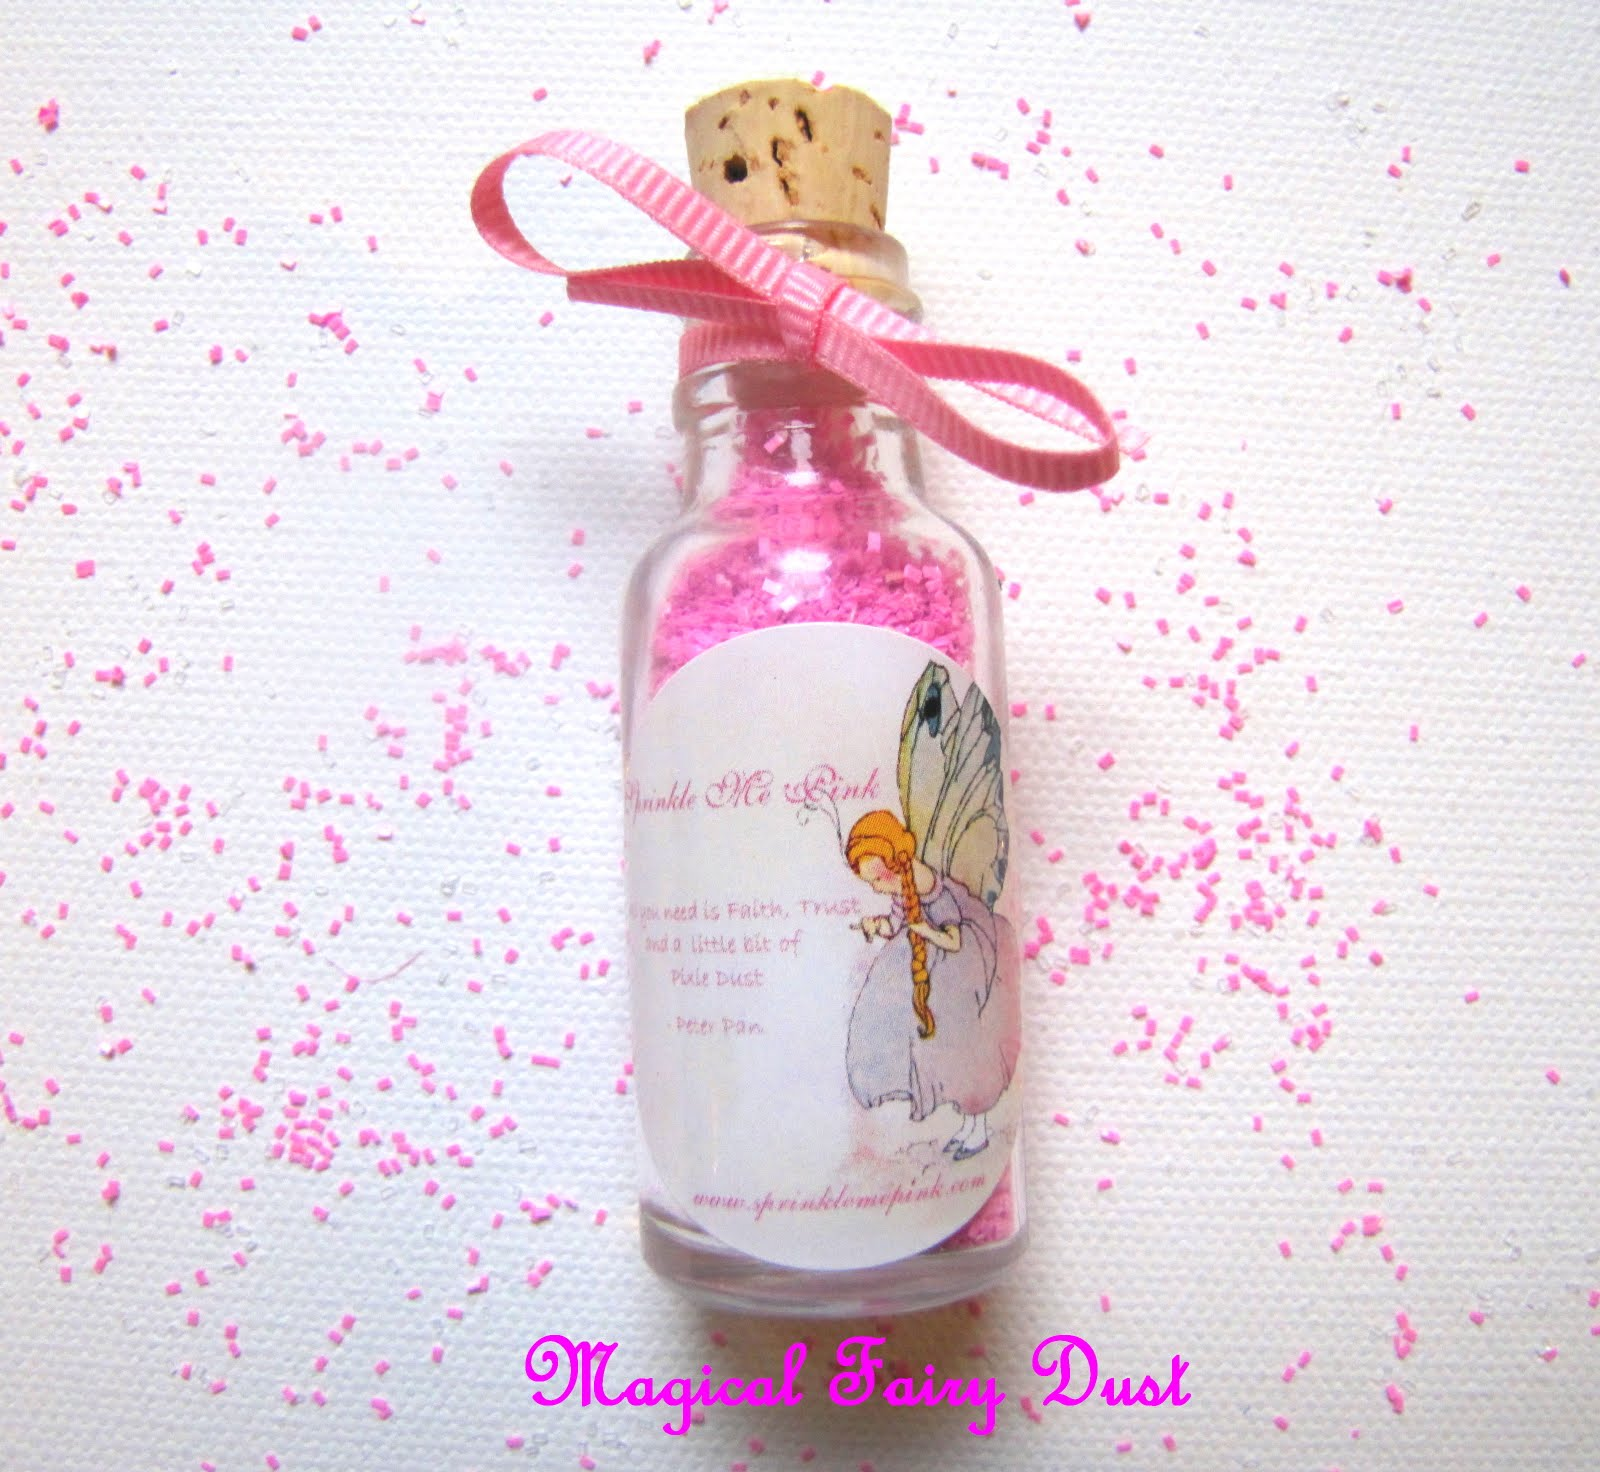 Sprinkle Me Pink Blog - DIY Creations: Keepsake Fairy Dust and Pixie ...